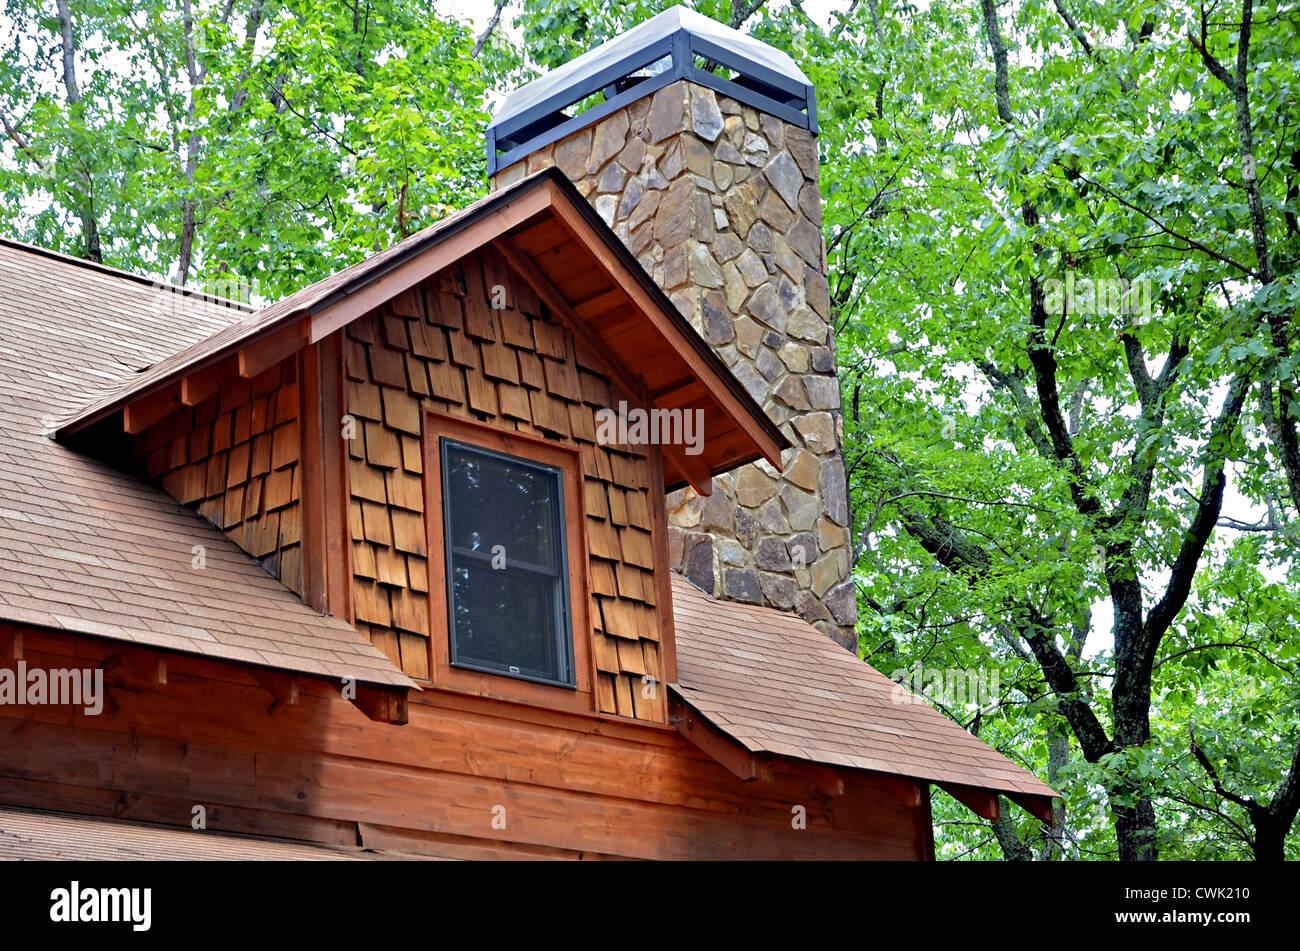 dormer window construction stockfotos dormer window construction bilder alamy. Black Bedroom Furniture Sets. Home Design Ideas